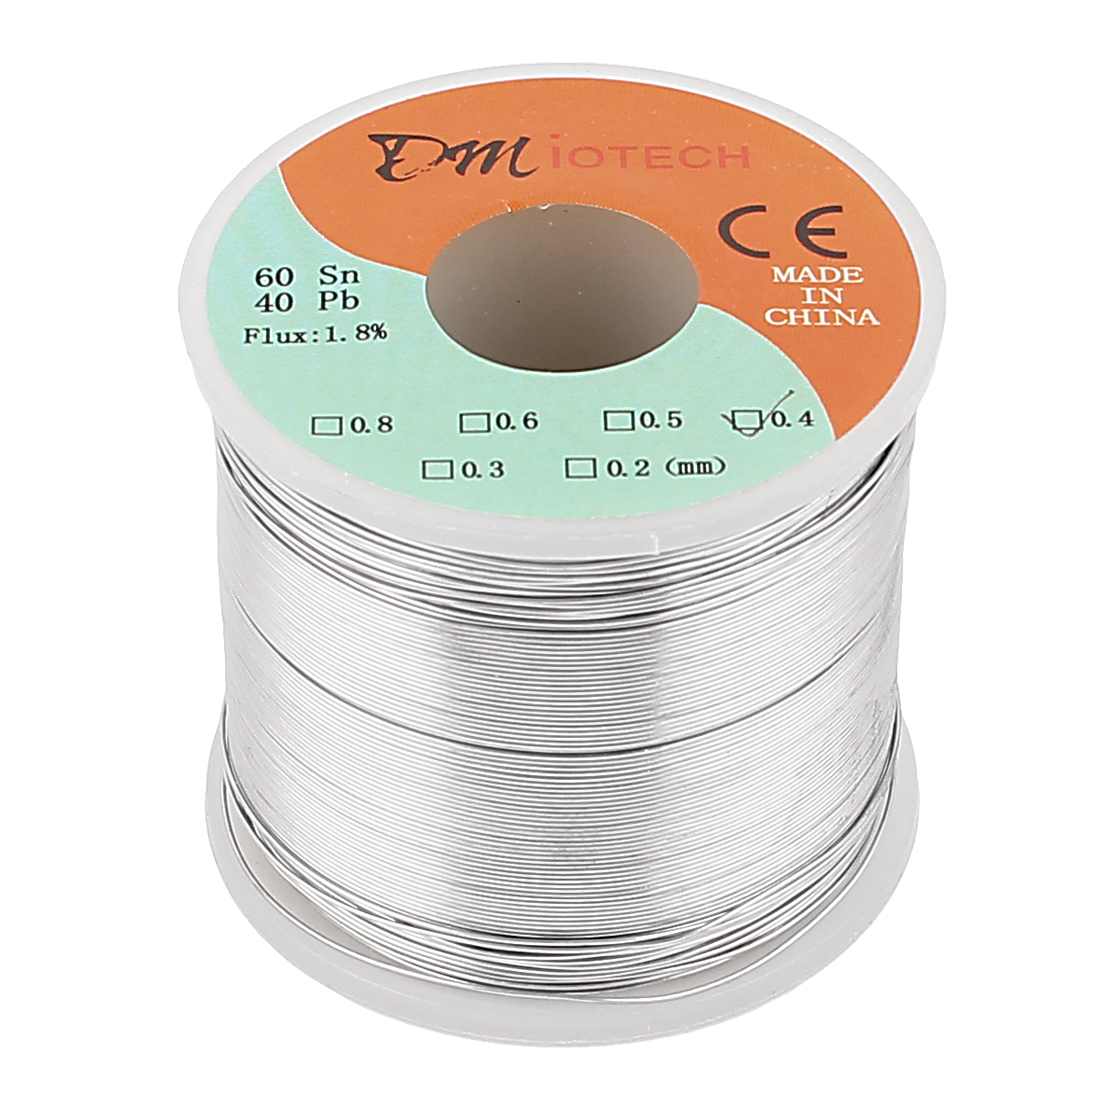 0.4mm Rosin Core Solder Tin Lead Solder Wire 60/40 for Electrical Soldering 400g